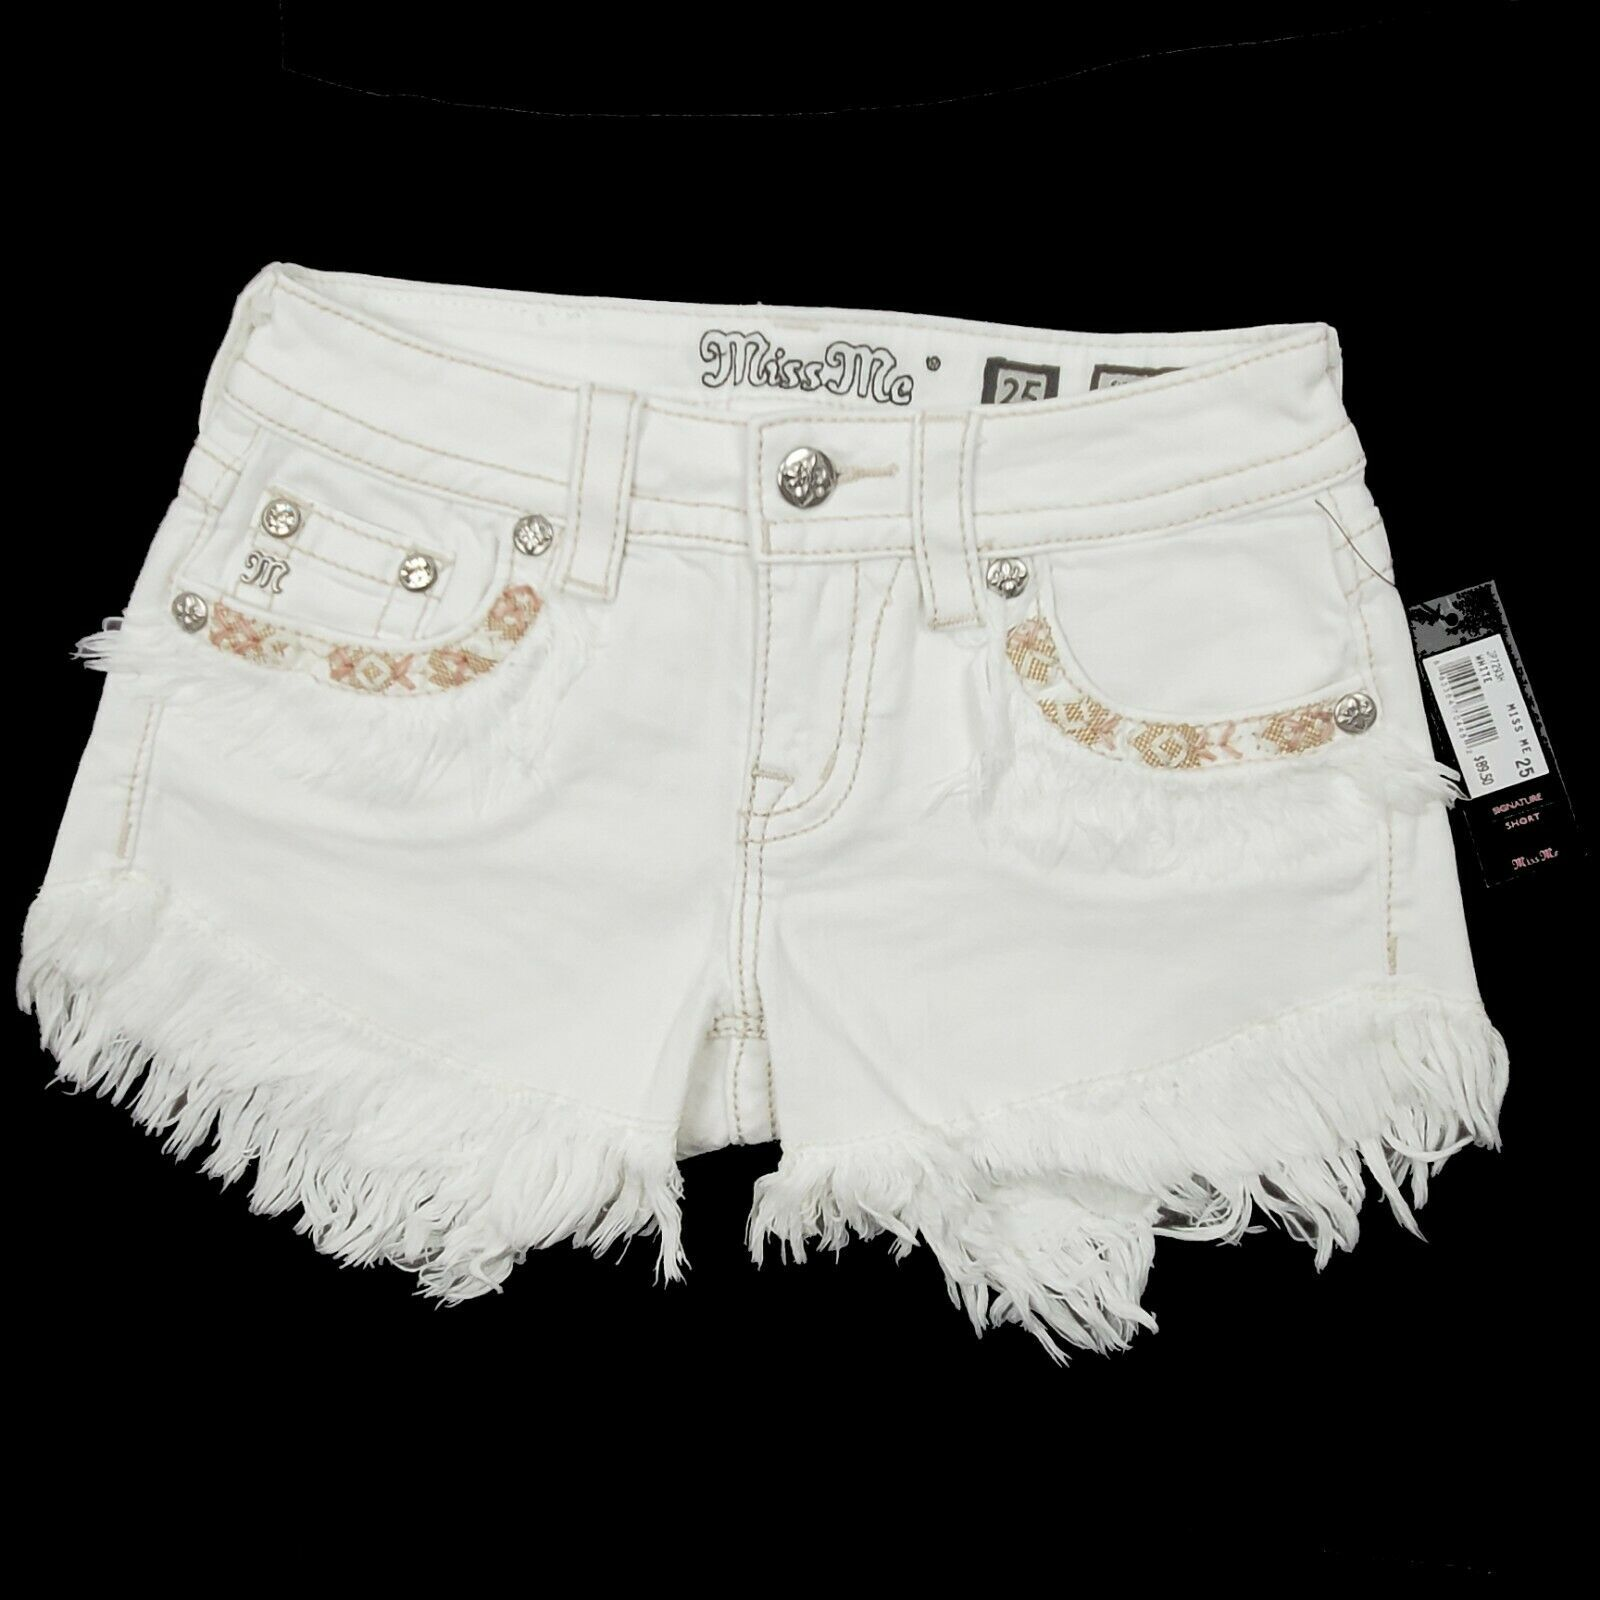 Miss Me Women's Signature Fringe Shorts JP7293H White 25 26 $89.50 Embroidered